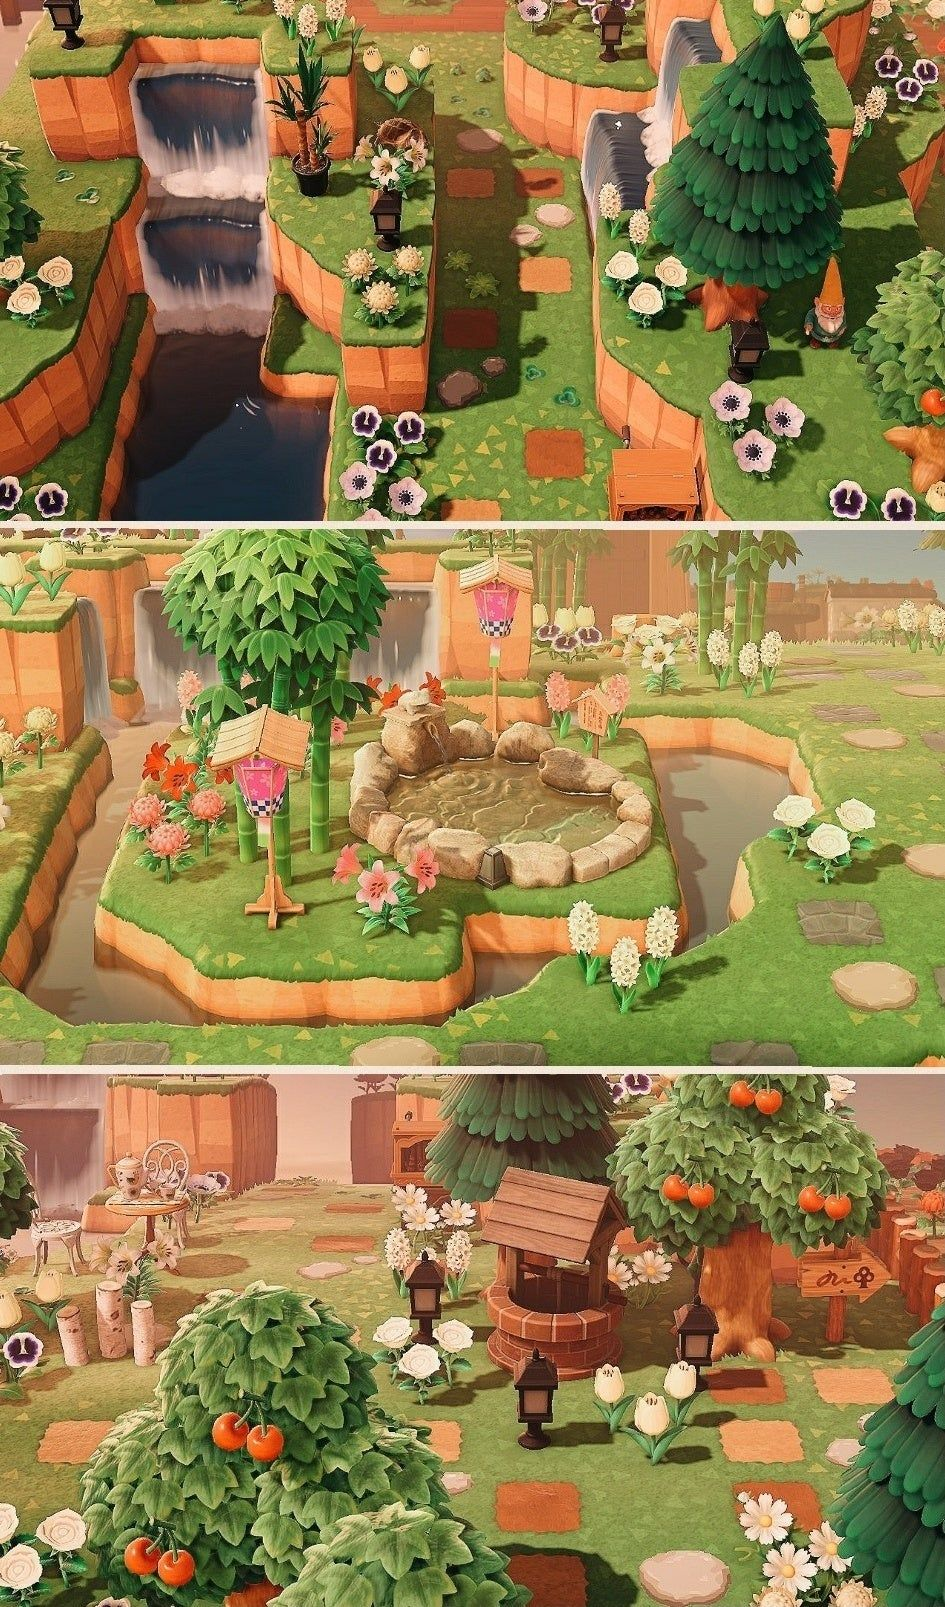 Reddit Animalcrossingdesign Just Wanted To Share Some Of My Favorite Spots On My Island Fee Animal Crossing Wild World Animal Crossing New Animal Crossing